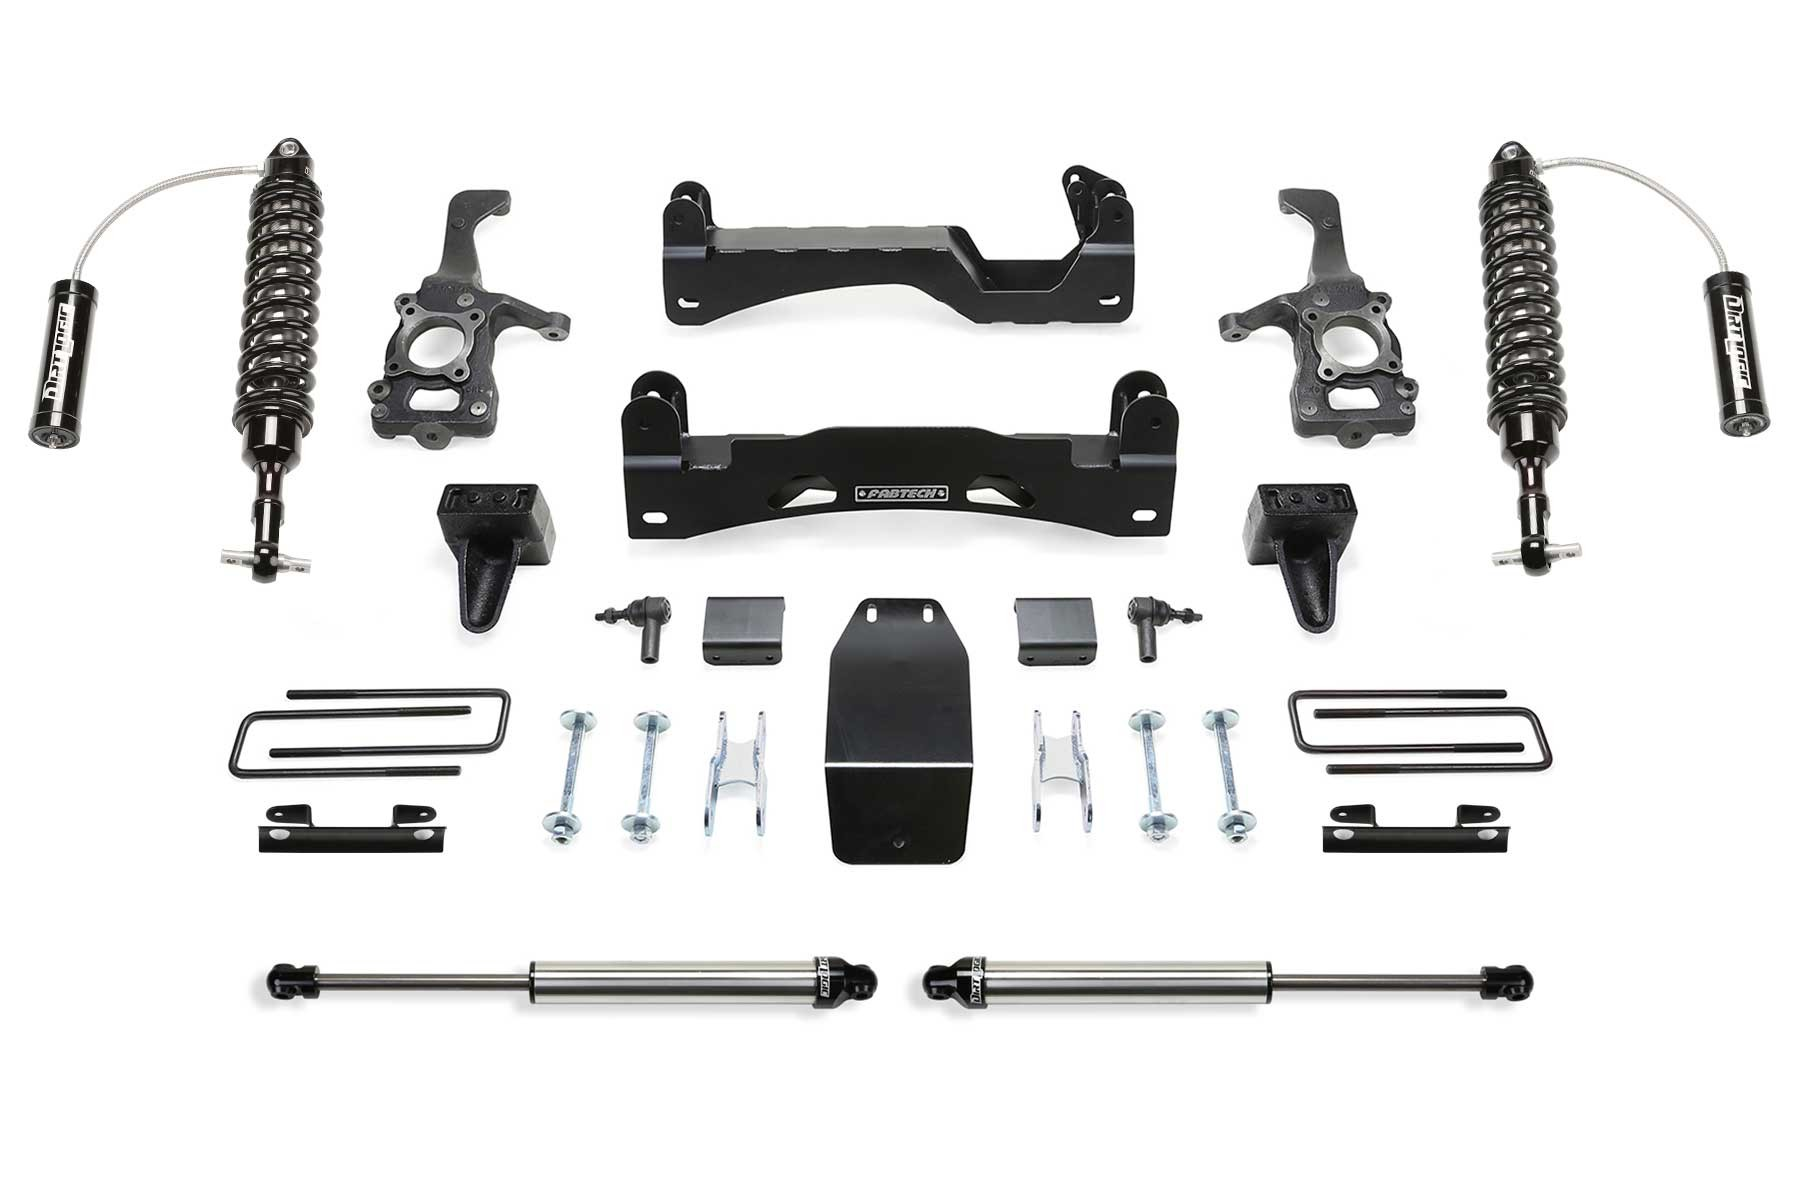 FABTECH-  2015-18 FORD F150 4WD- 6″ PERFORMANCE SYSTEM W/ FRONT DIRT LOGIC 2.5 RESI COILOVERS & REAR DIRT LOGIC SHOCKS